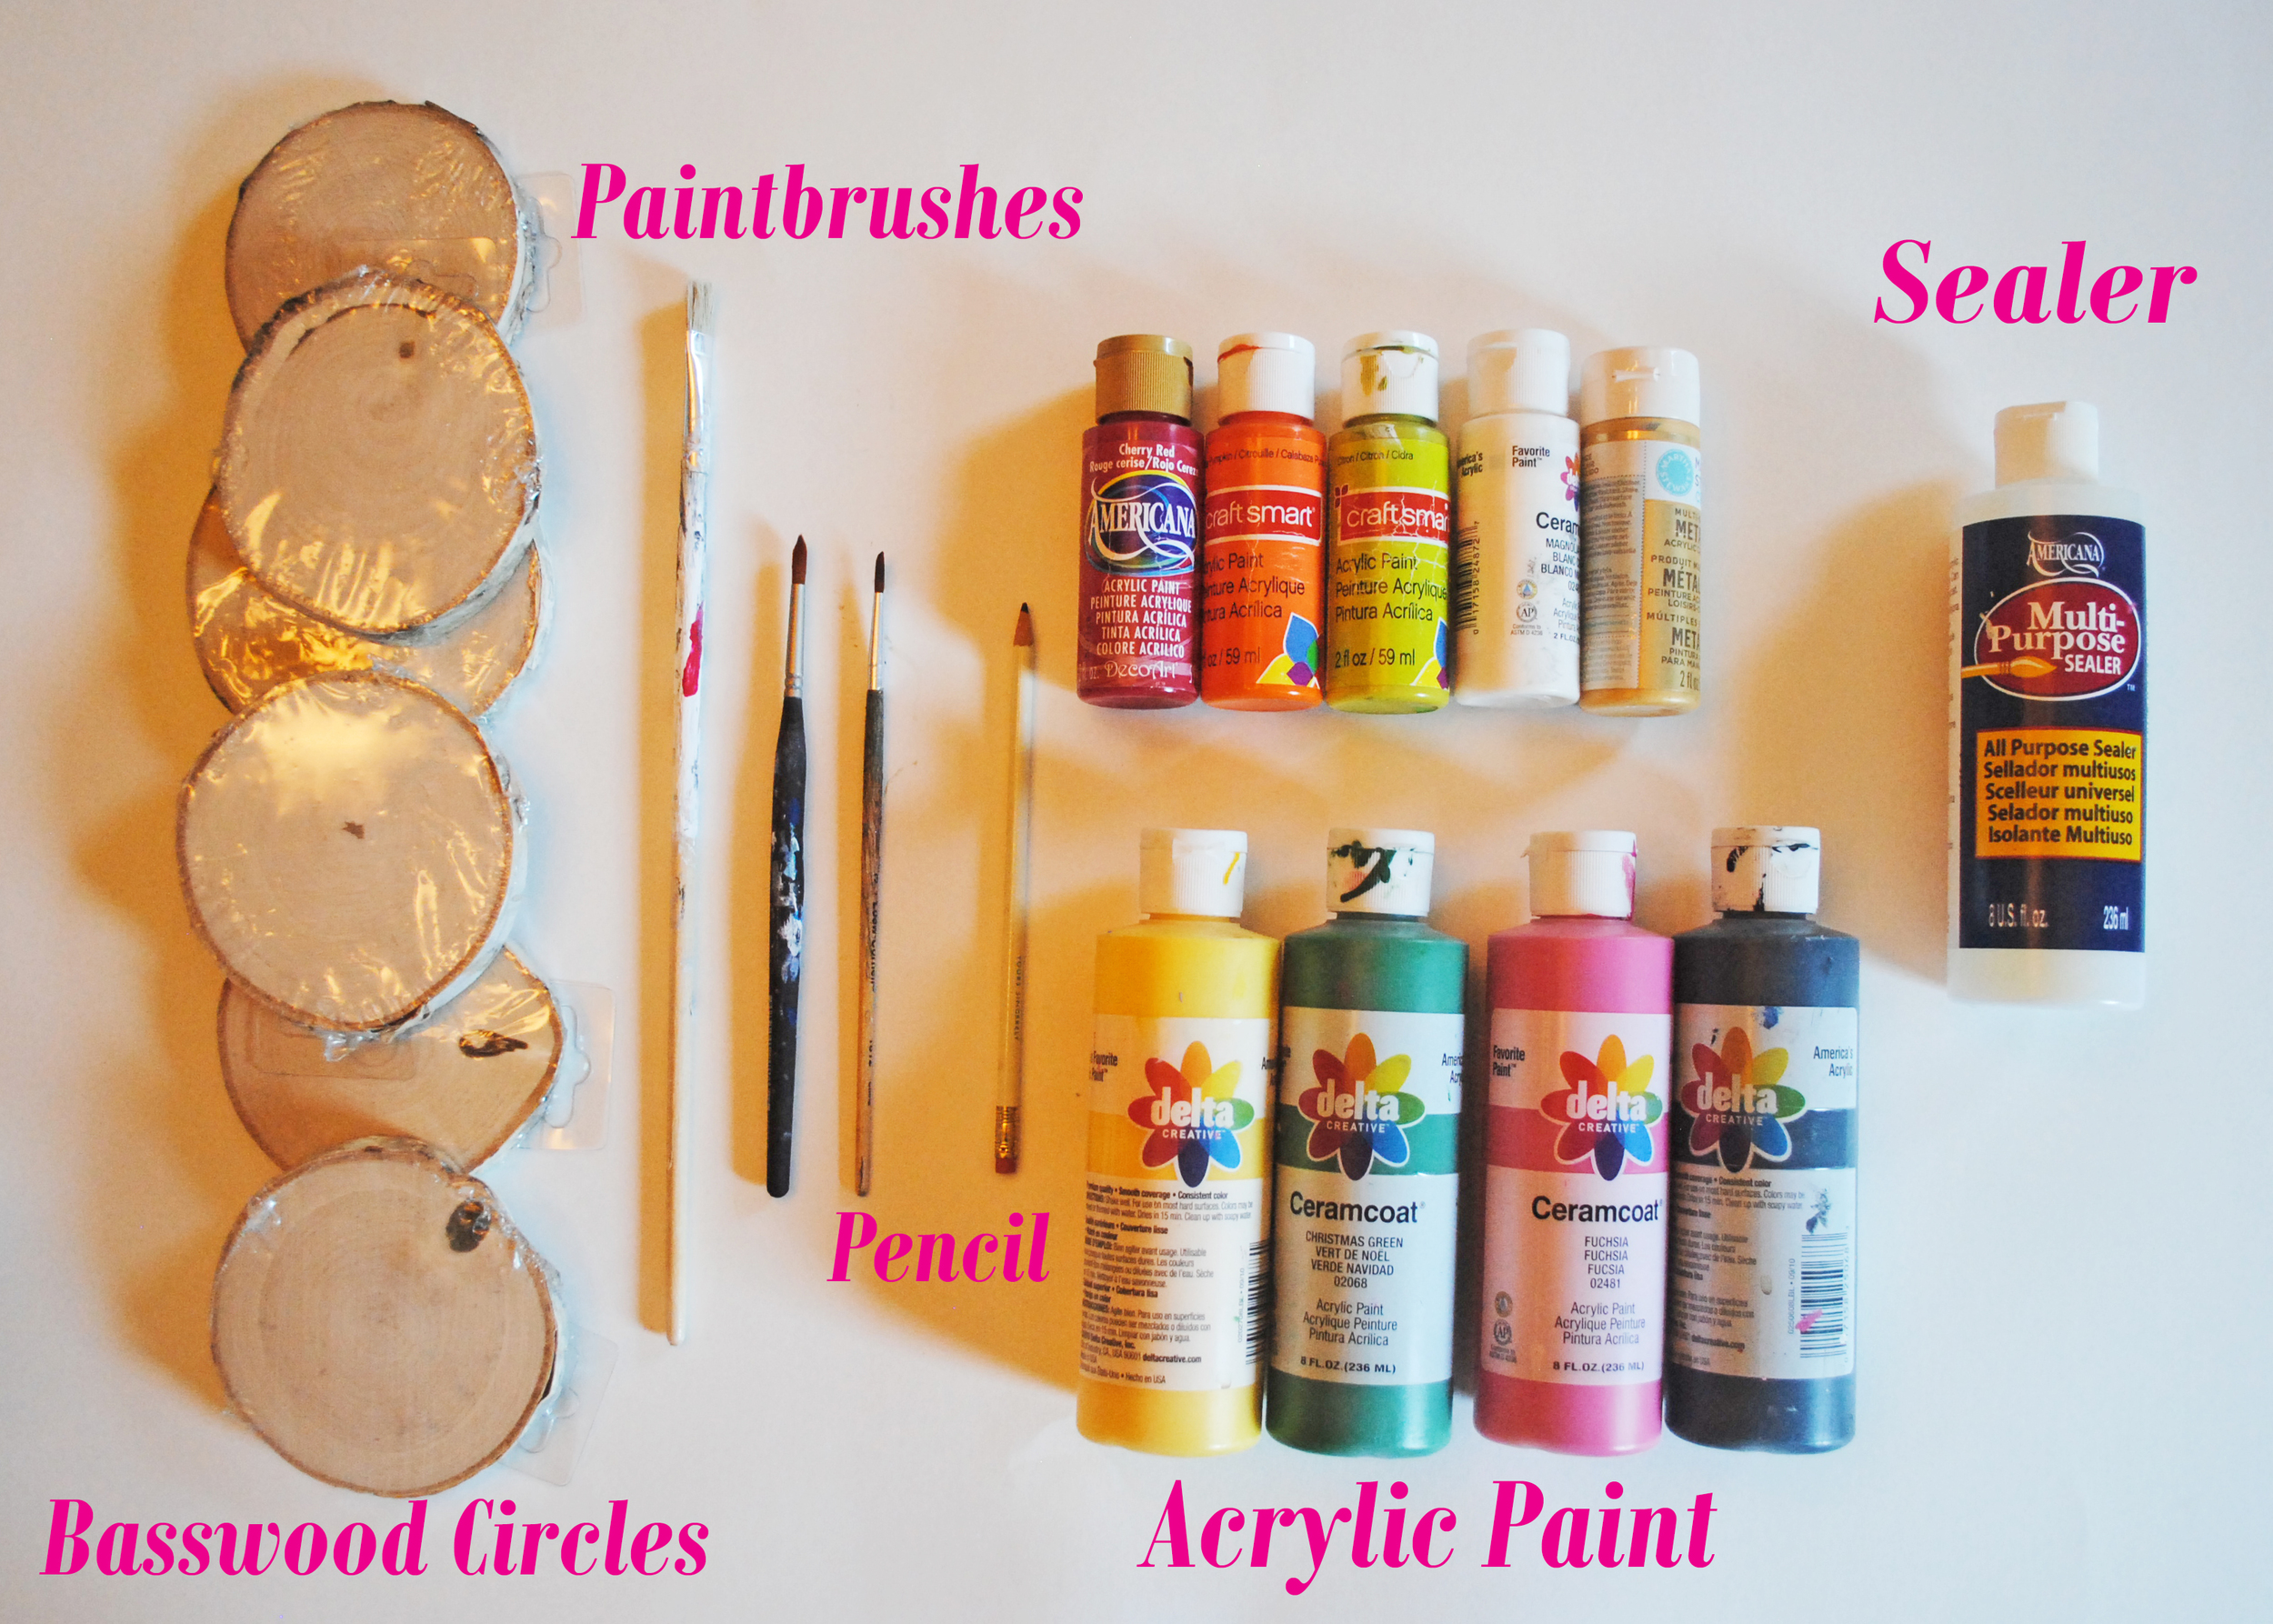 The Basswood Circles were $1 each from Michael's Craft Store and the bottle of sealer was $3 from Jo-Ann Fabrics. I already had the other paints and brushes, so the cost for this craft was $9.